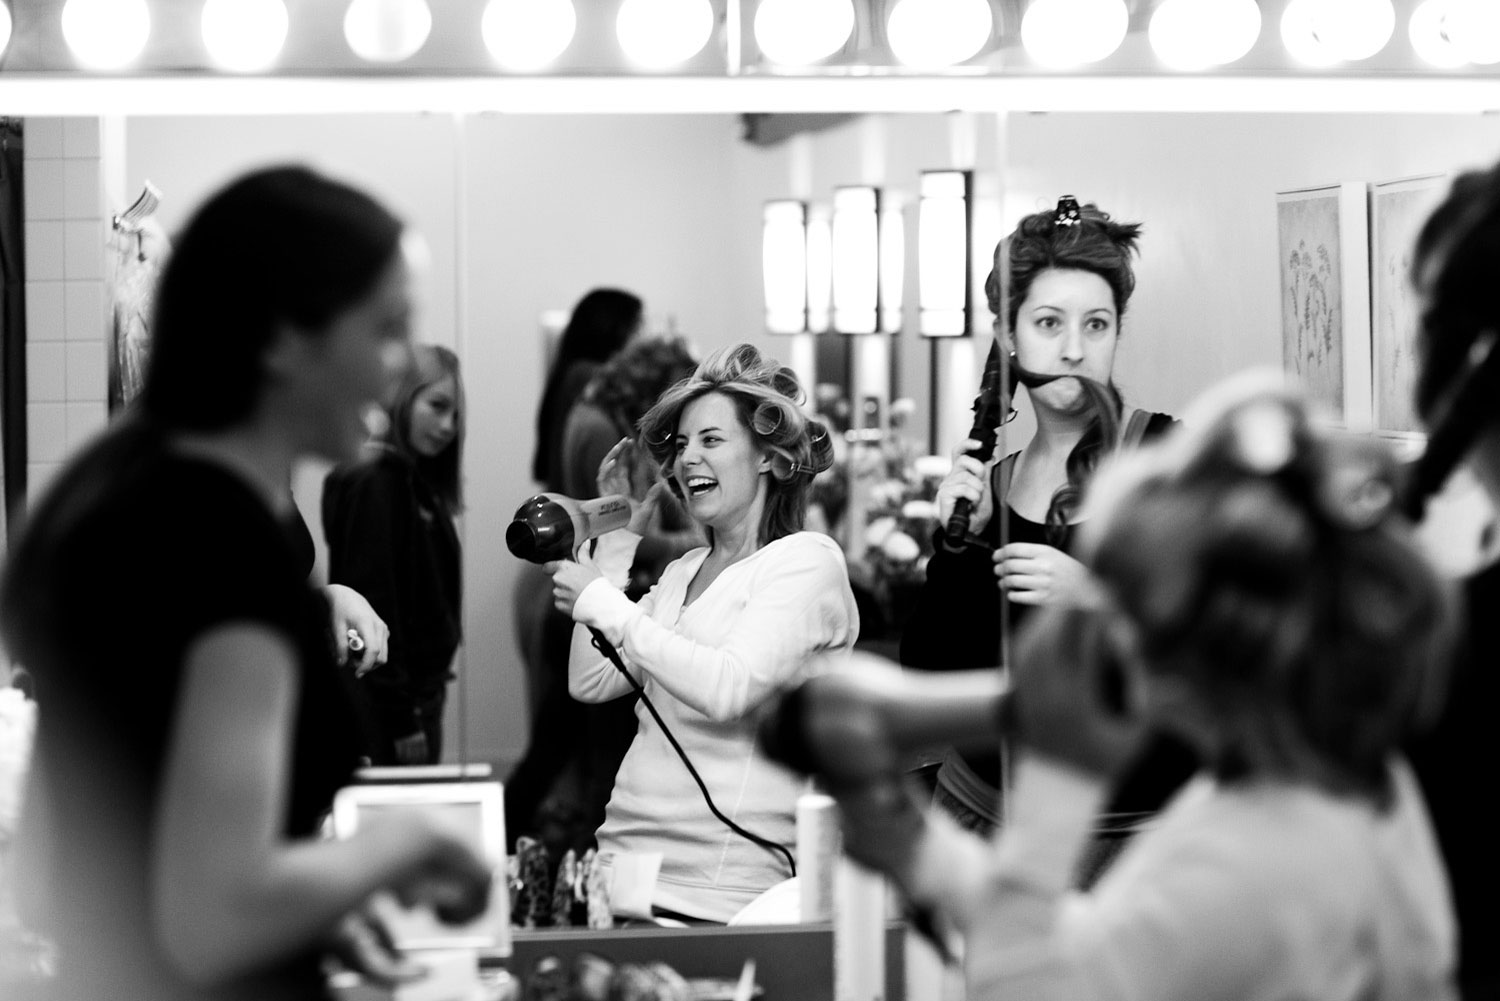 A wedding image of a happy bride getting ready with her bridesmaids.